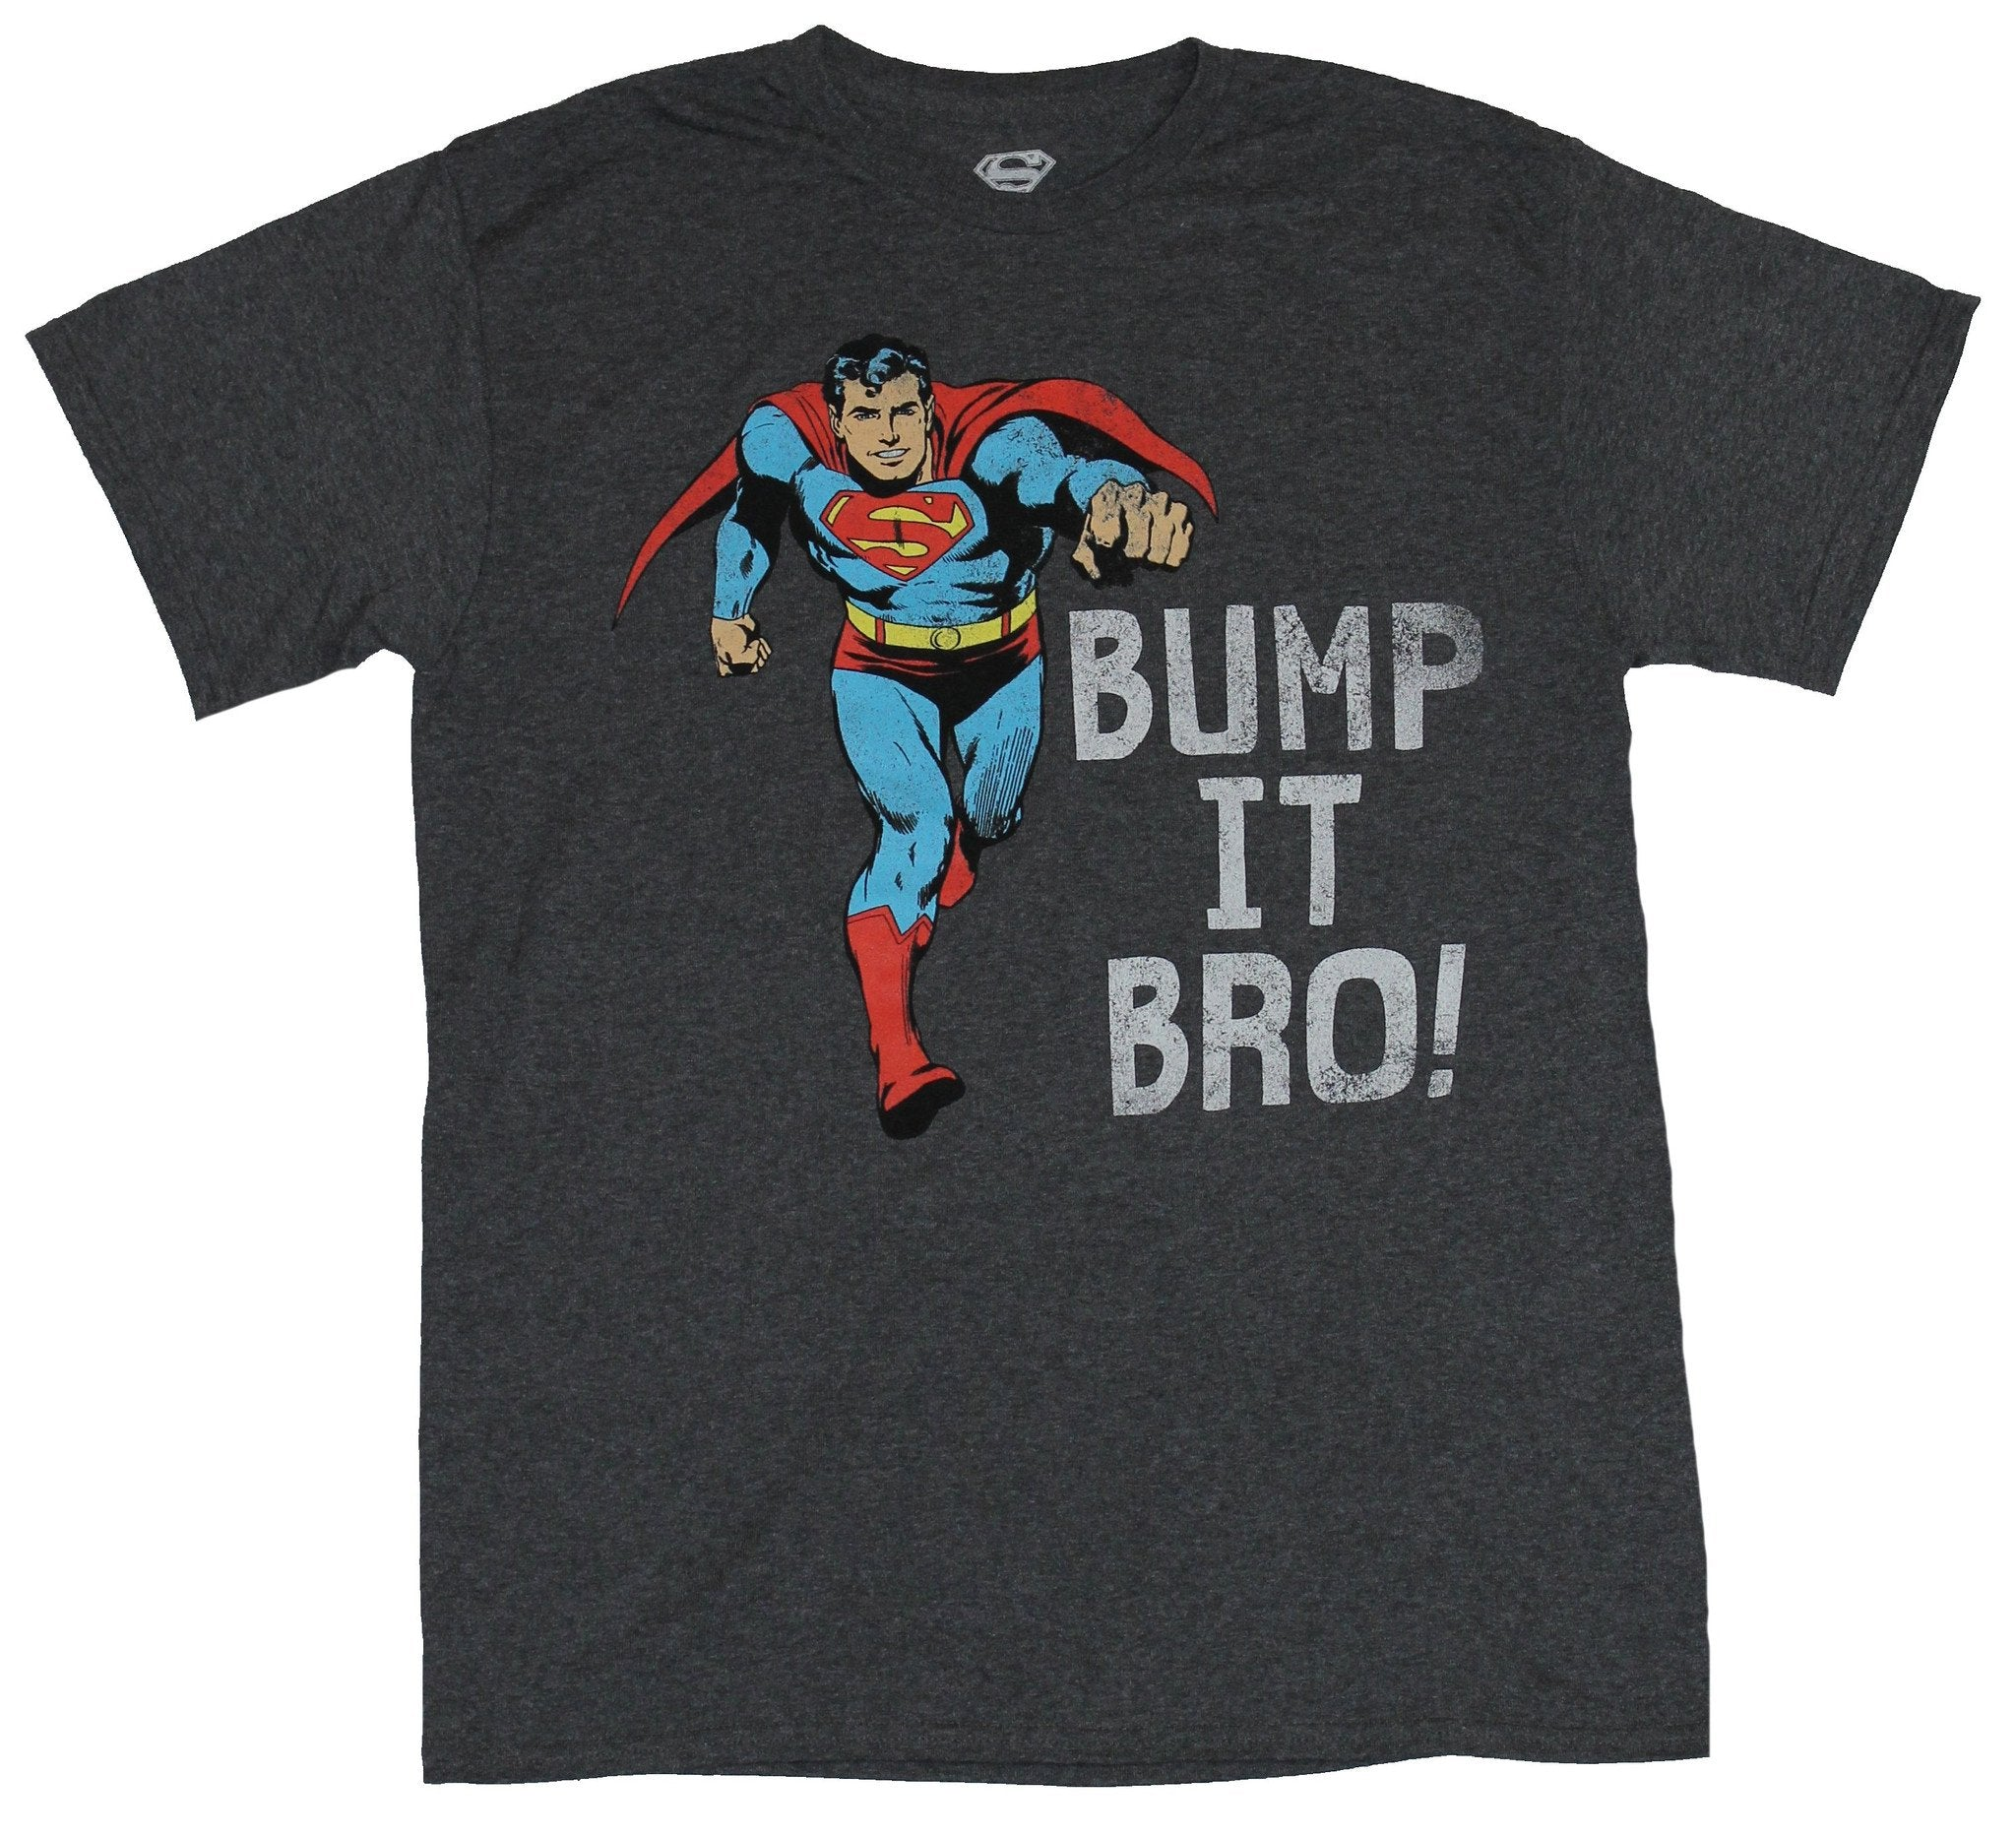 Superman (DC Comics)  Mens T-Shirt - Bump It Bro Fist Bumping Superman Image